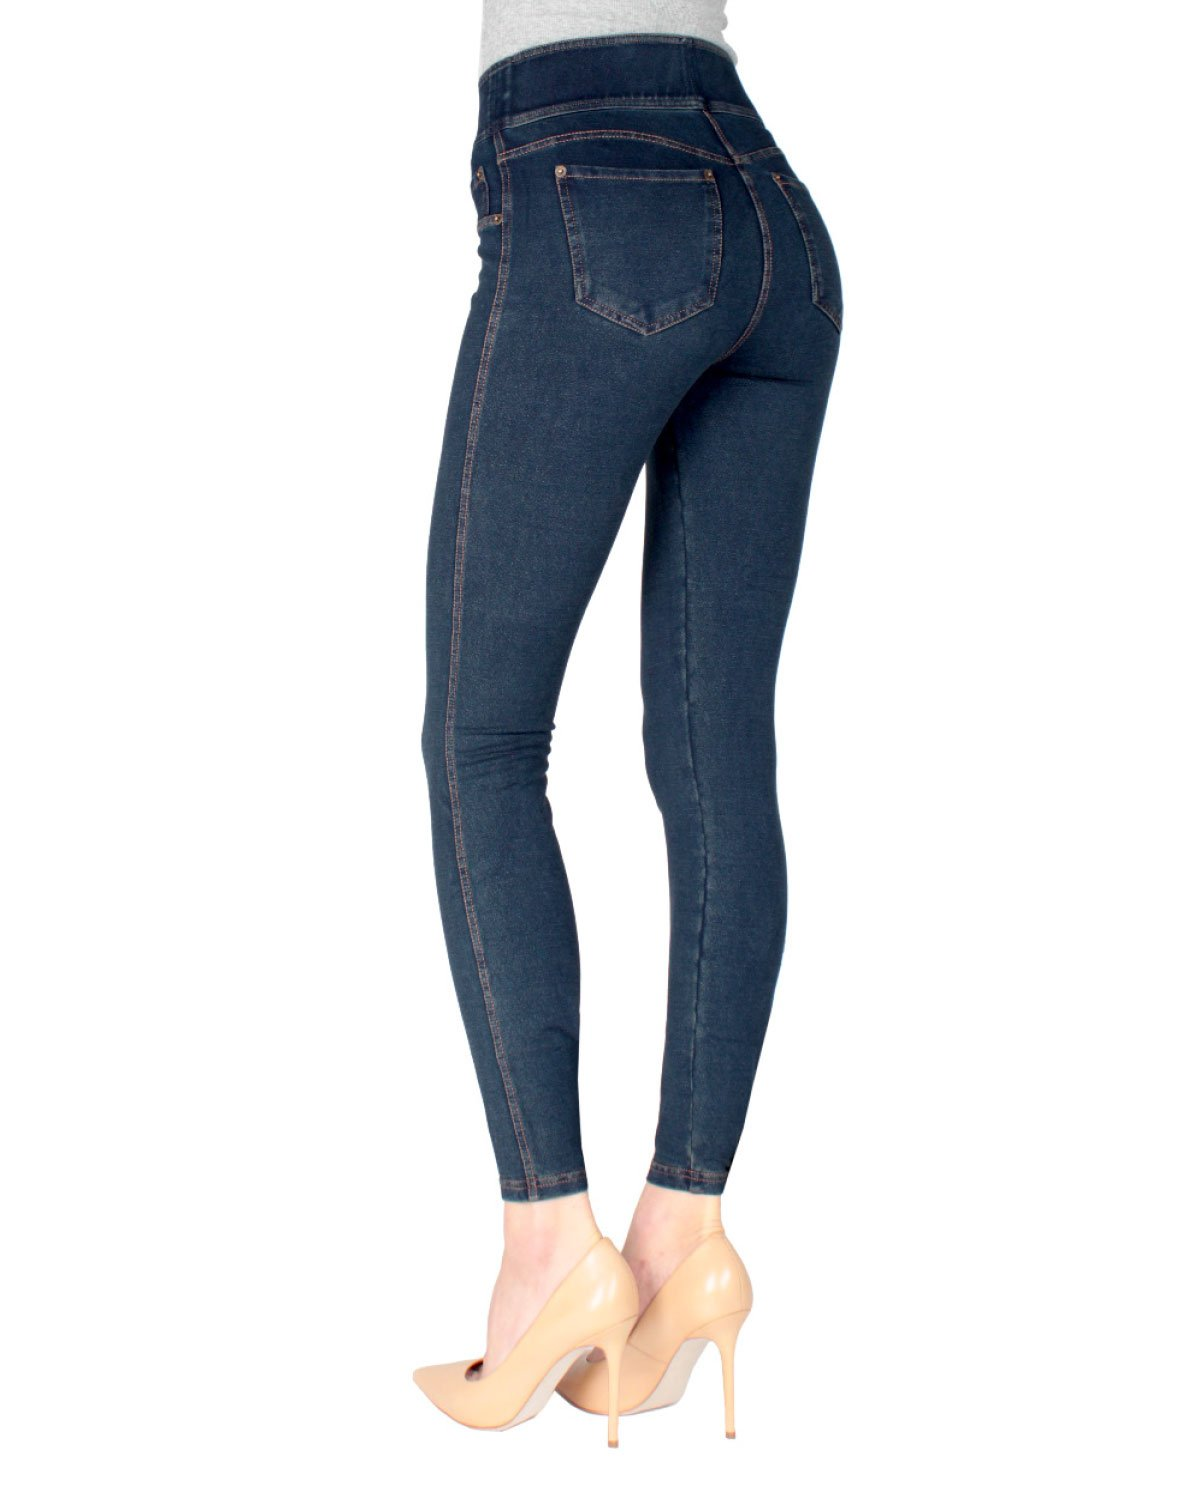 Mago Shaping Denim Legging